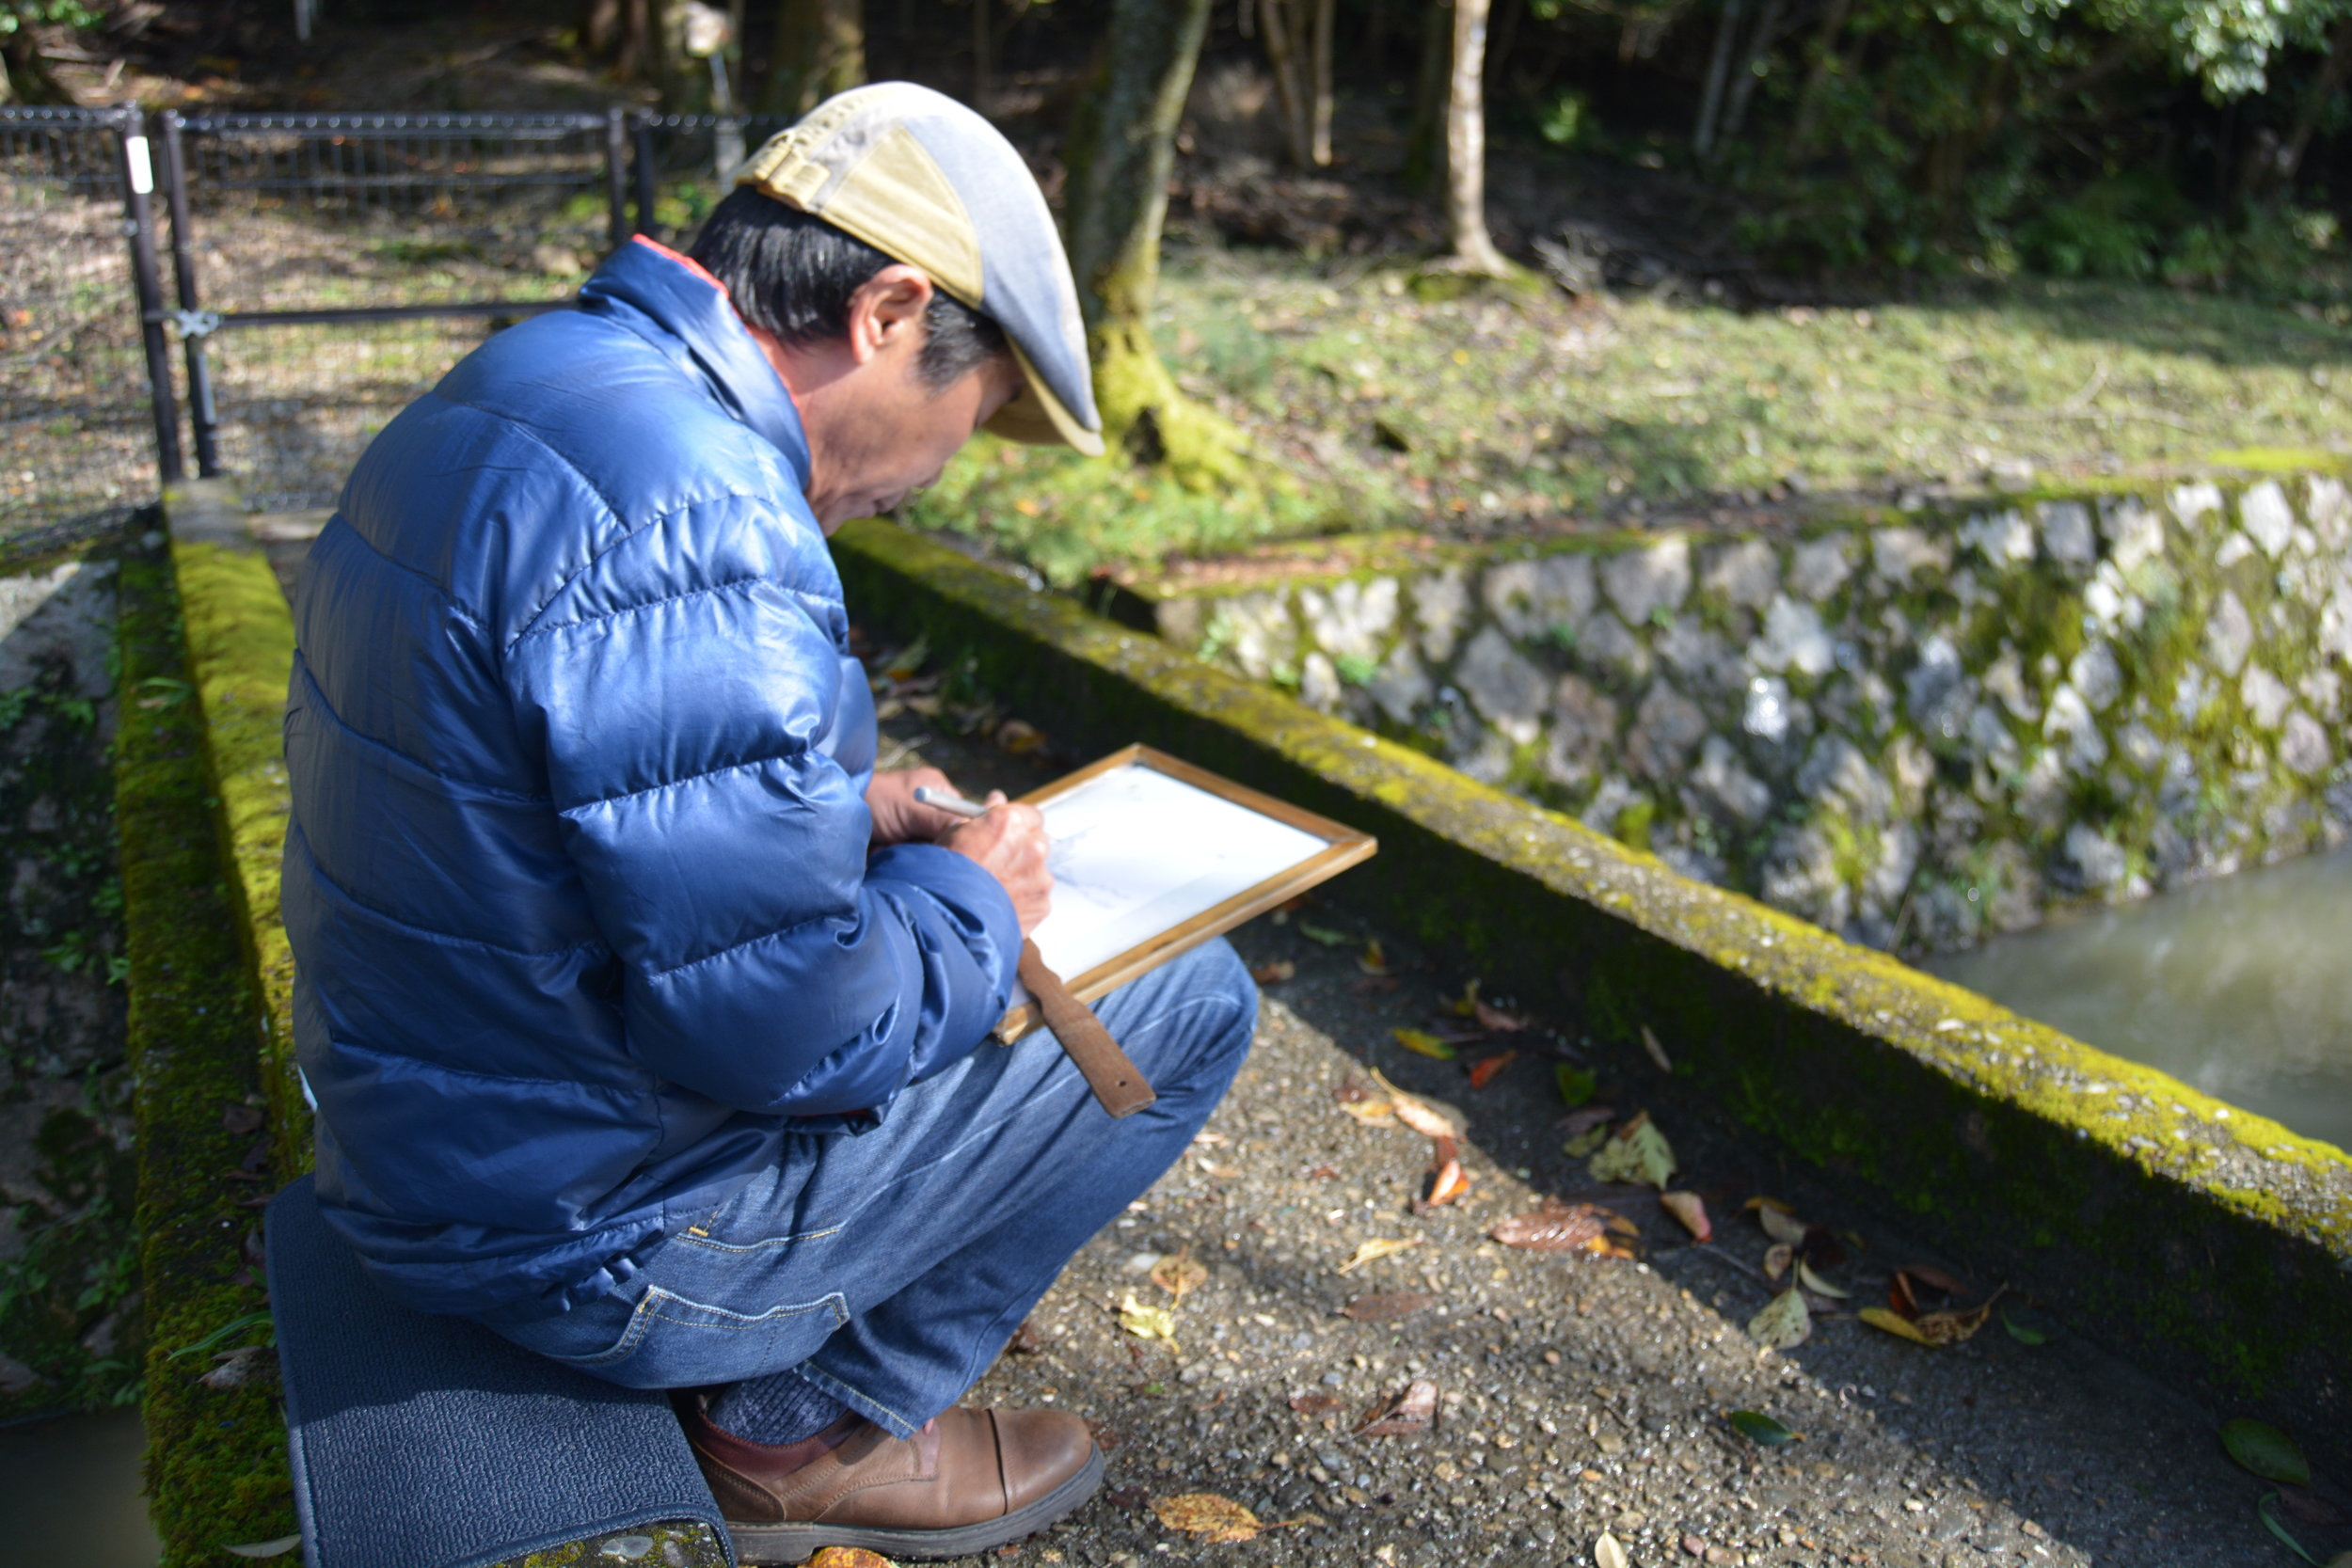 This artist was drawing on a small footbridge on the Philosopher's Path in Kyoto. He was sketching these incredibly detailed drawings with a fine pencil - I've never seen something so intricate.My photo of the print doesn't do the real thing justice!